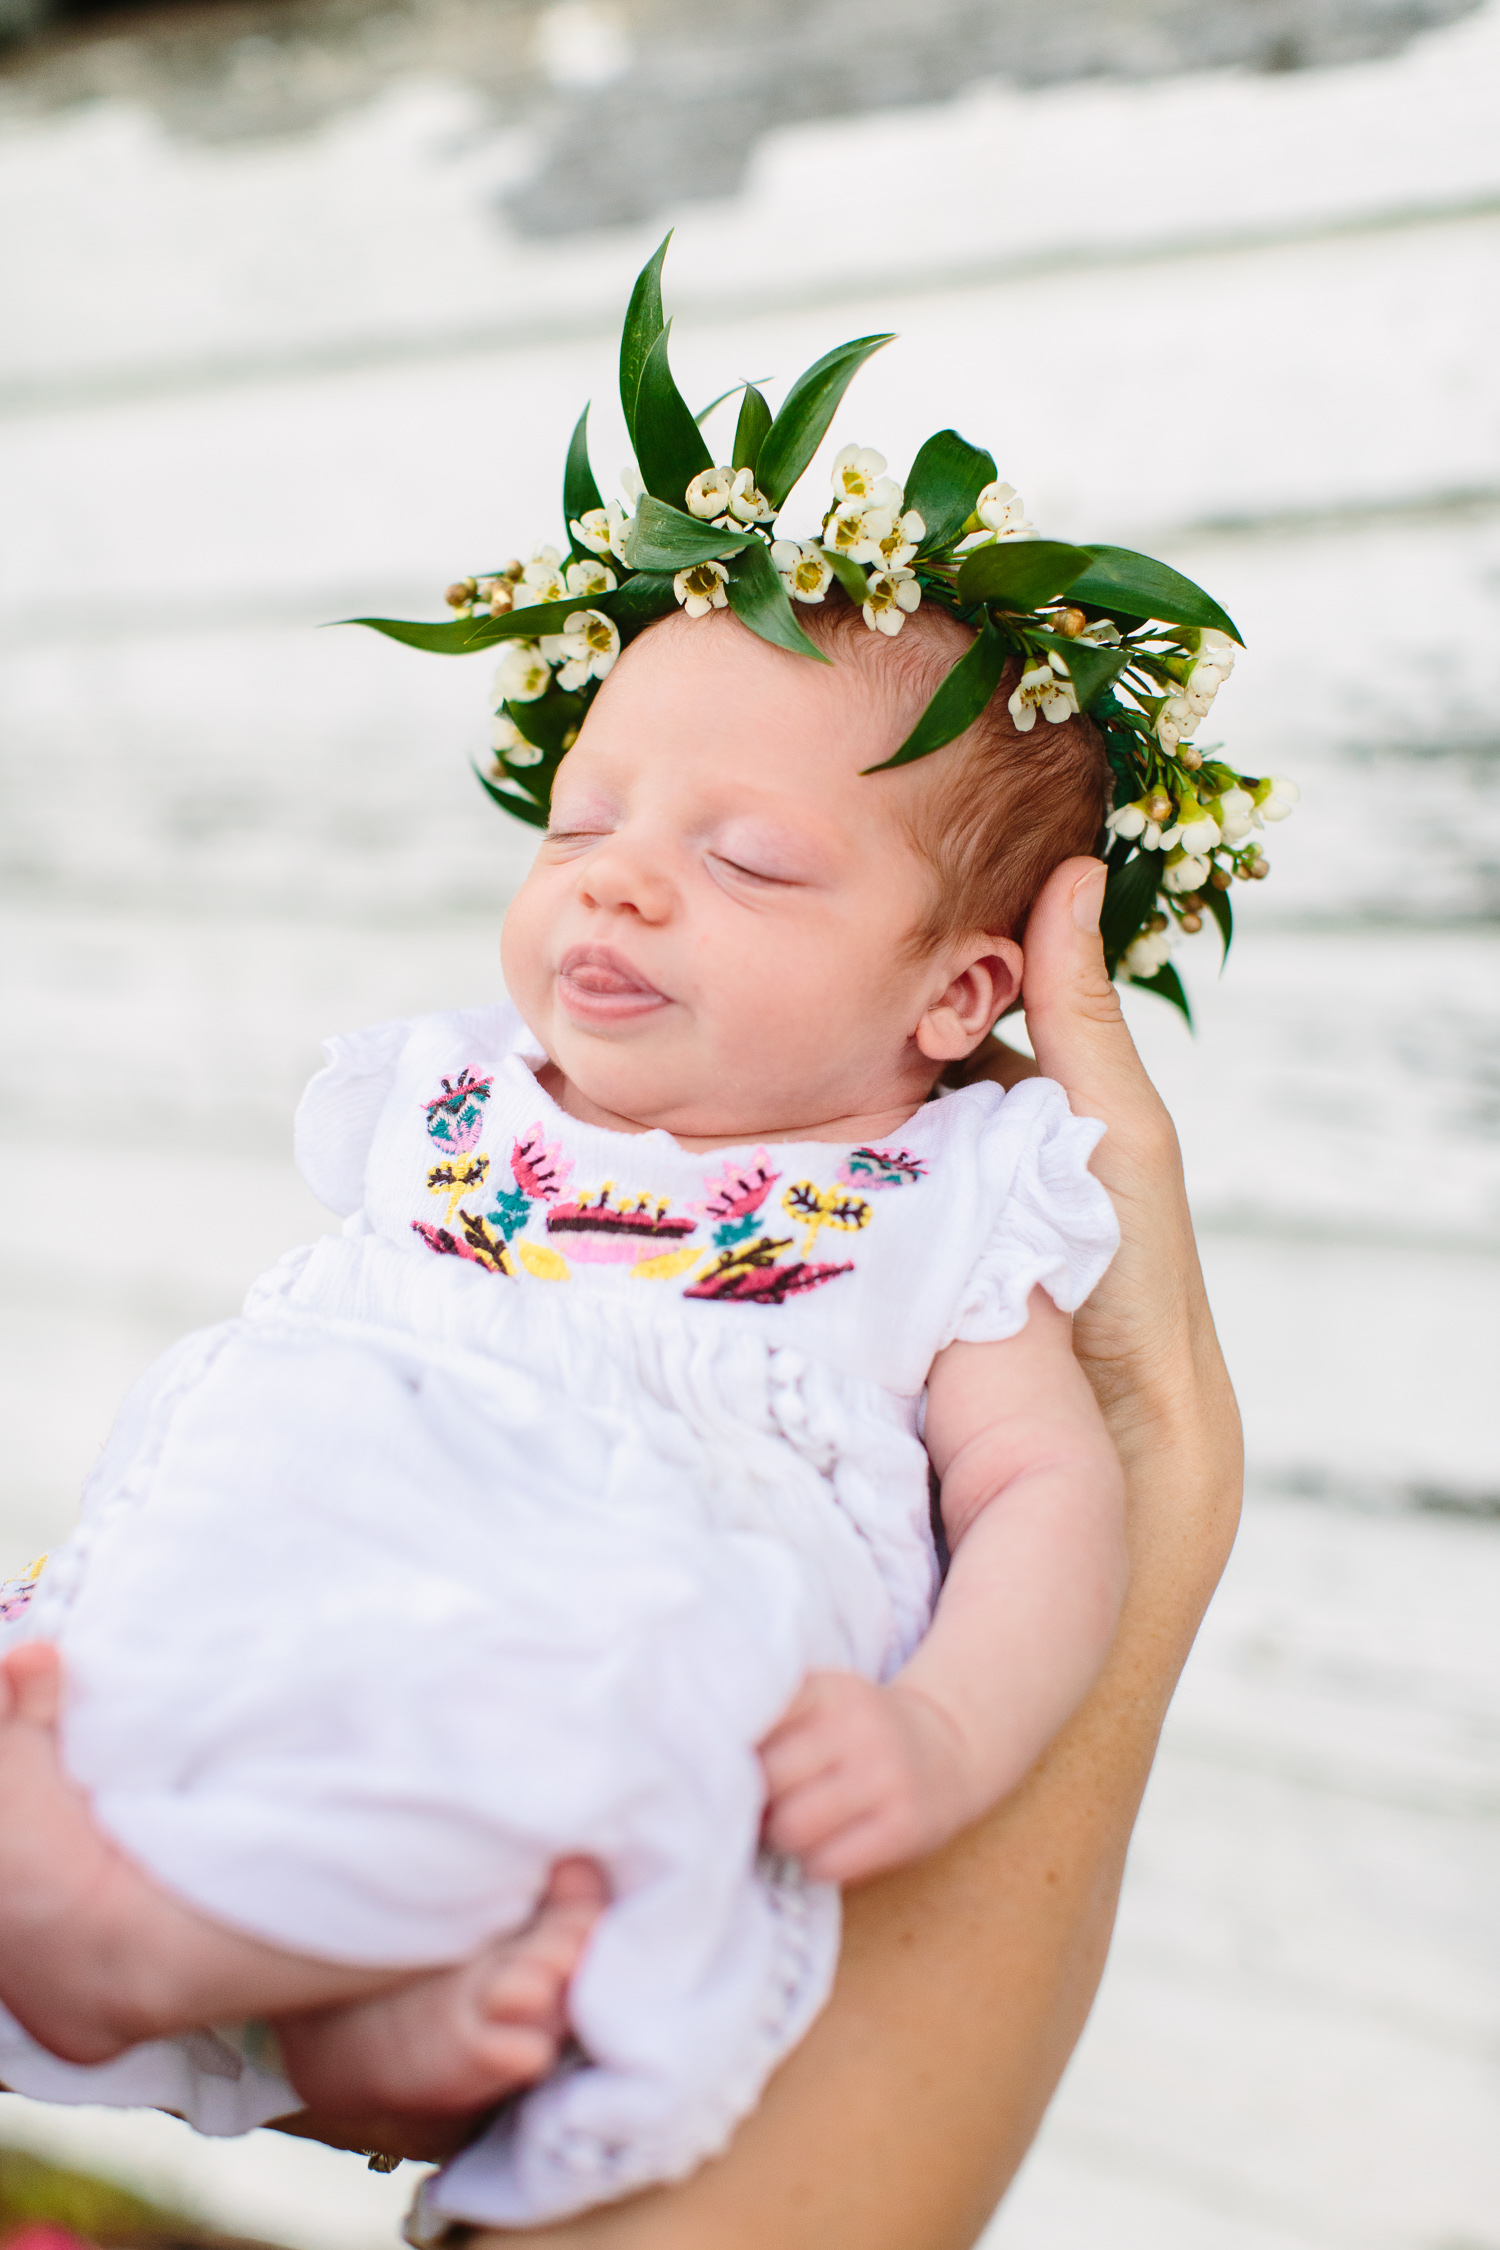 poses, inspiration, colorful, vibrant, at home, emotion, portraits, Knoxville, country, outdoors, Tennessee, editorial, fun, creative, family, lifestyle, newborn, floral crown